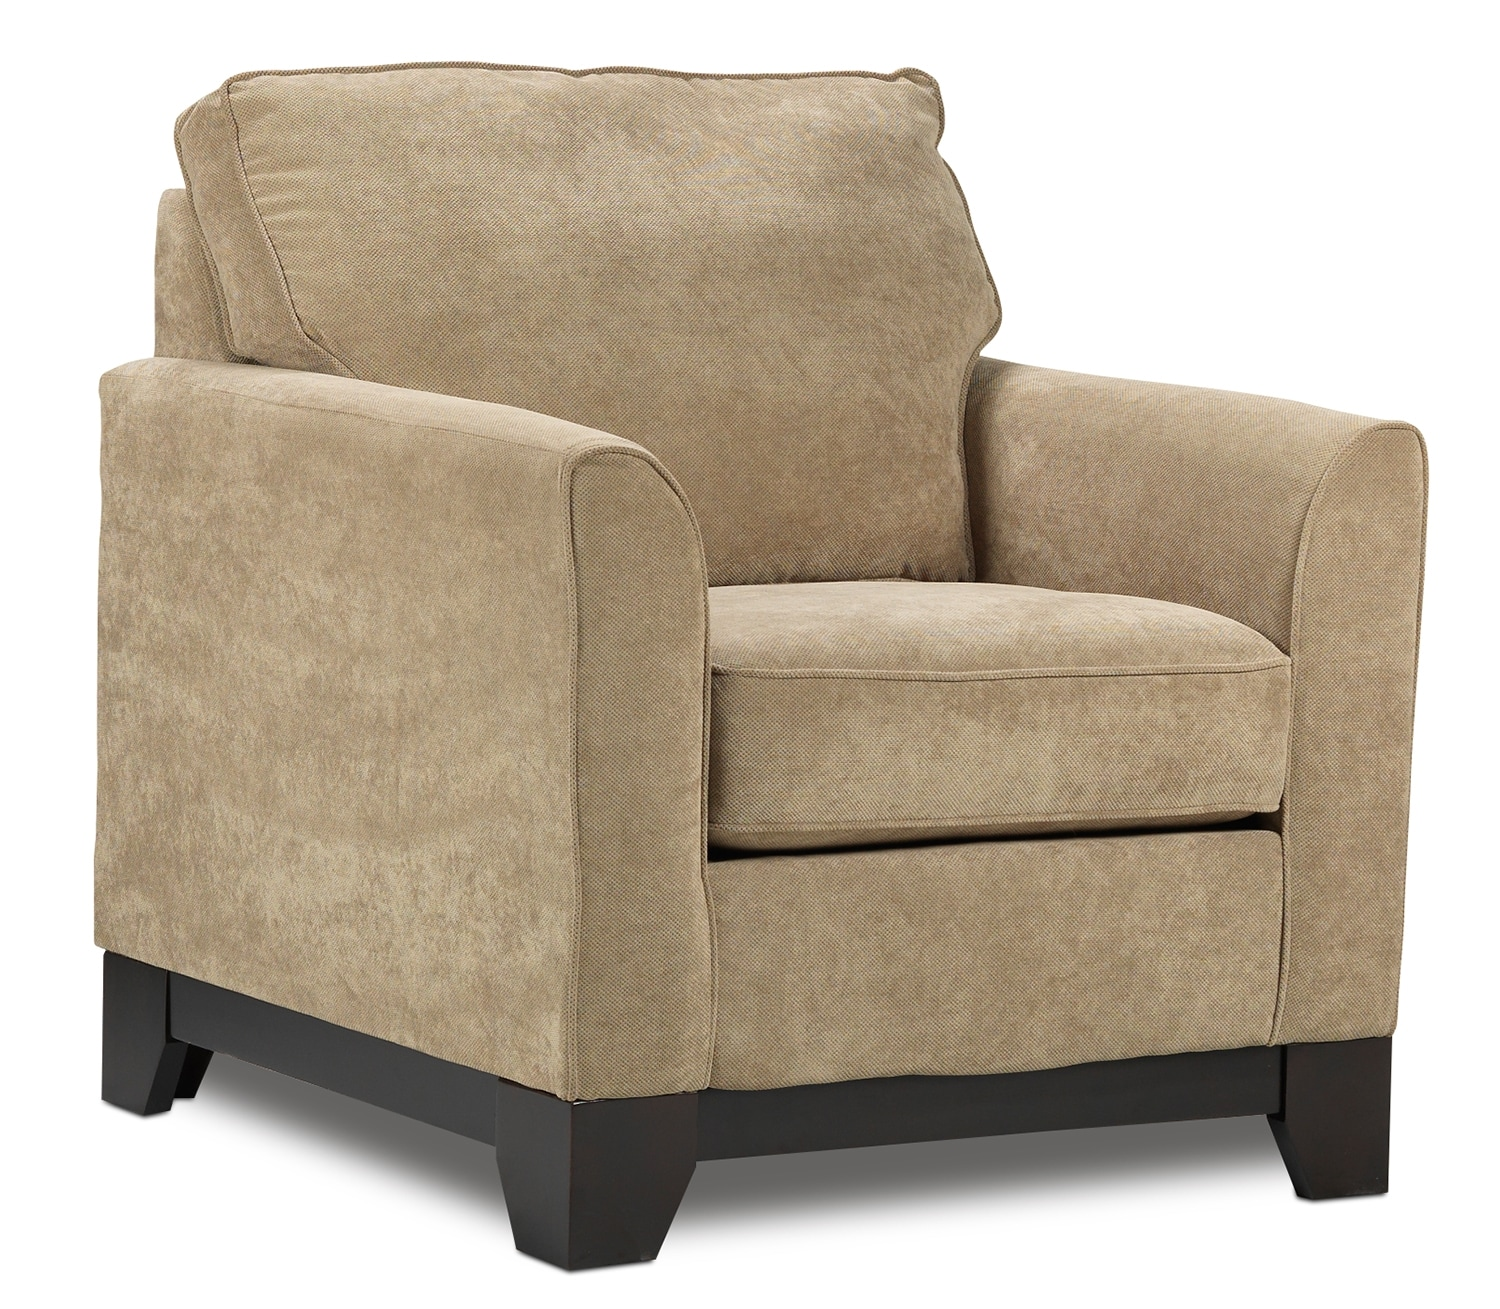 Living Room Made Of Sand: Sand Castle Chair - Light Brown